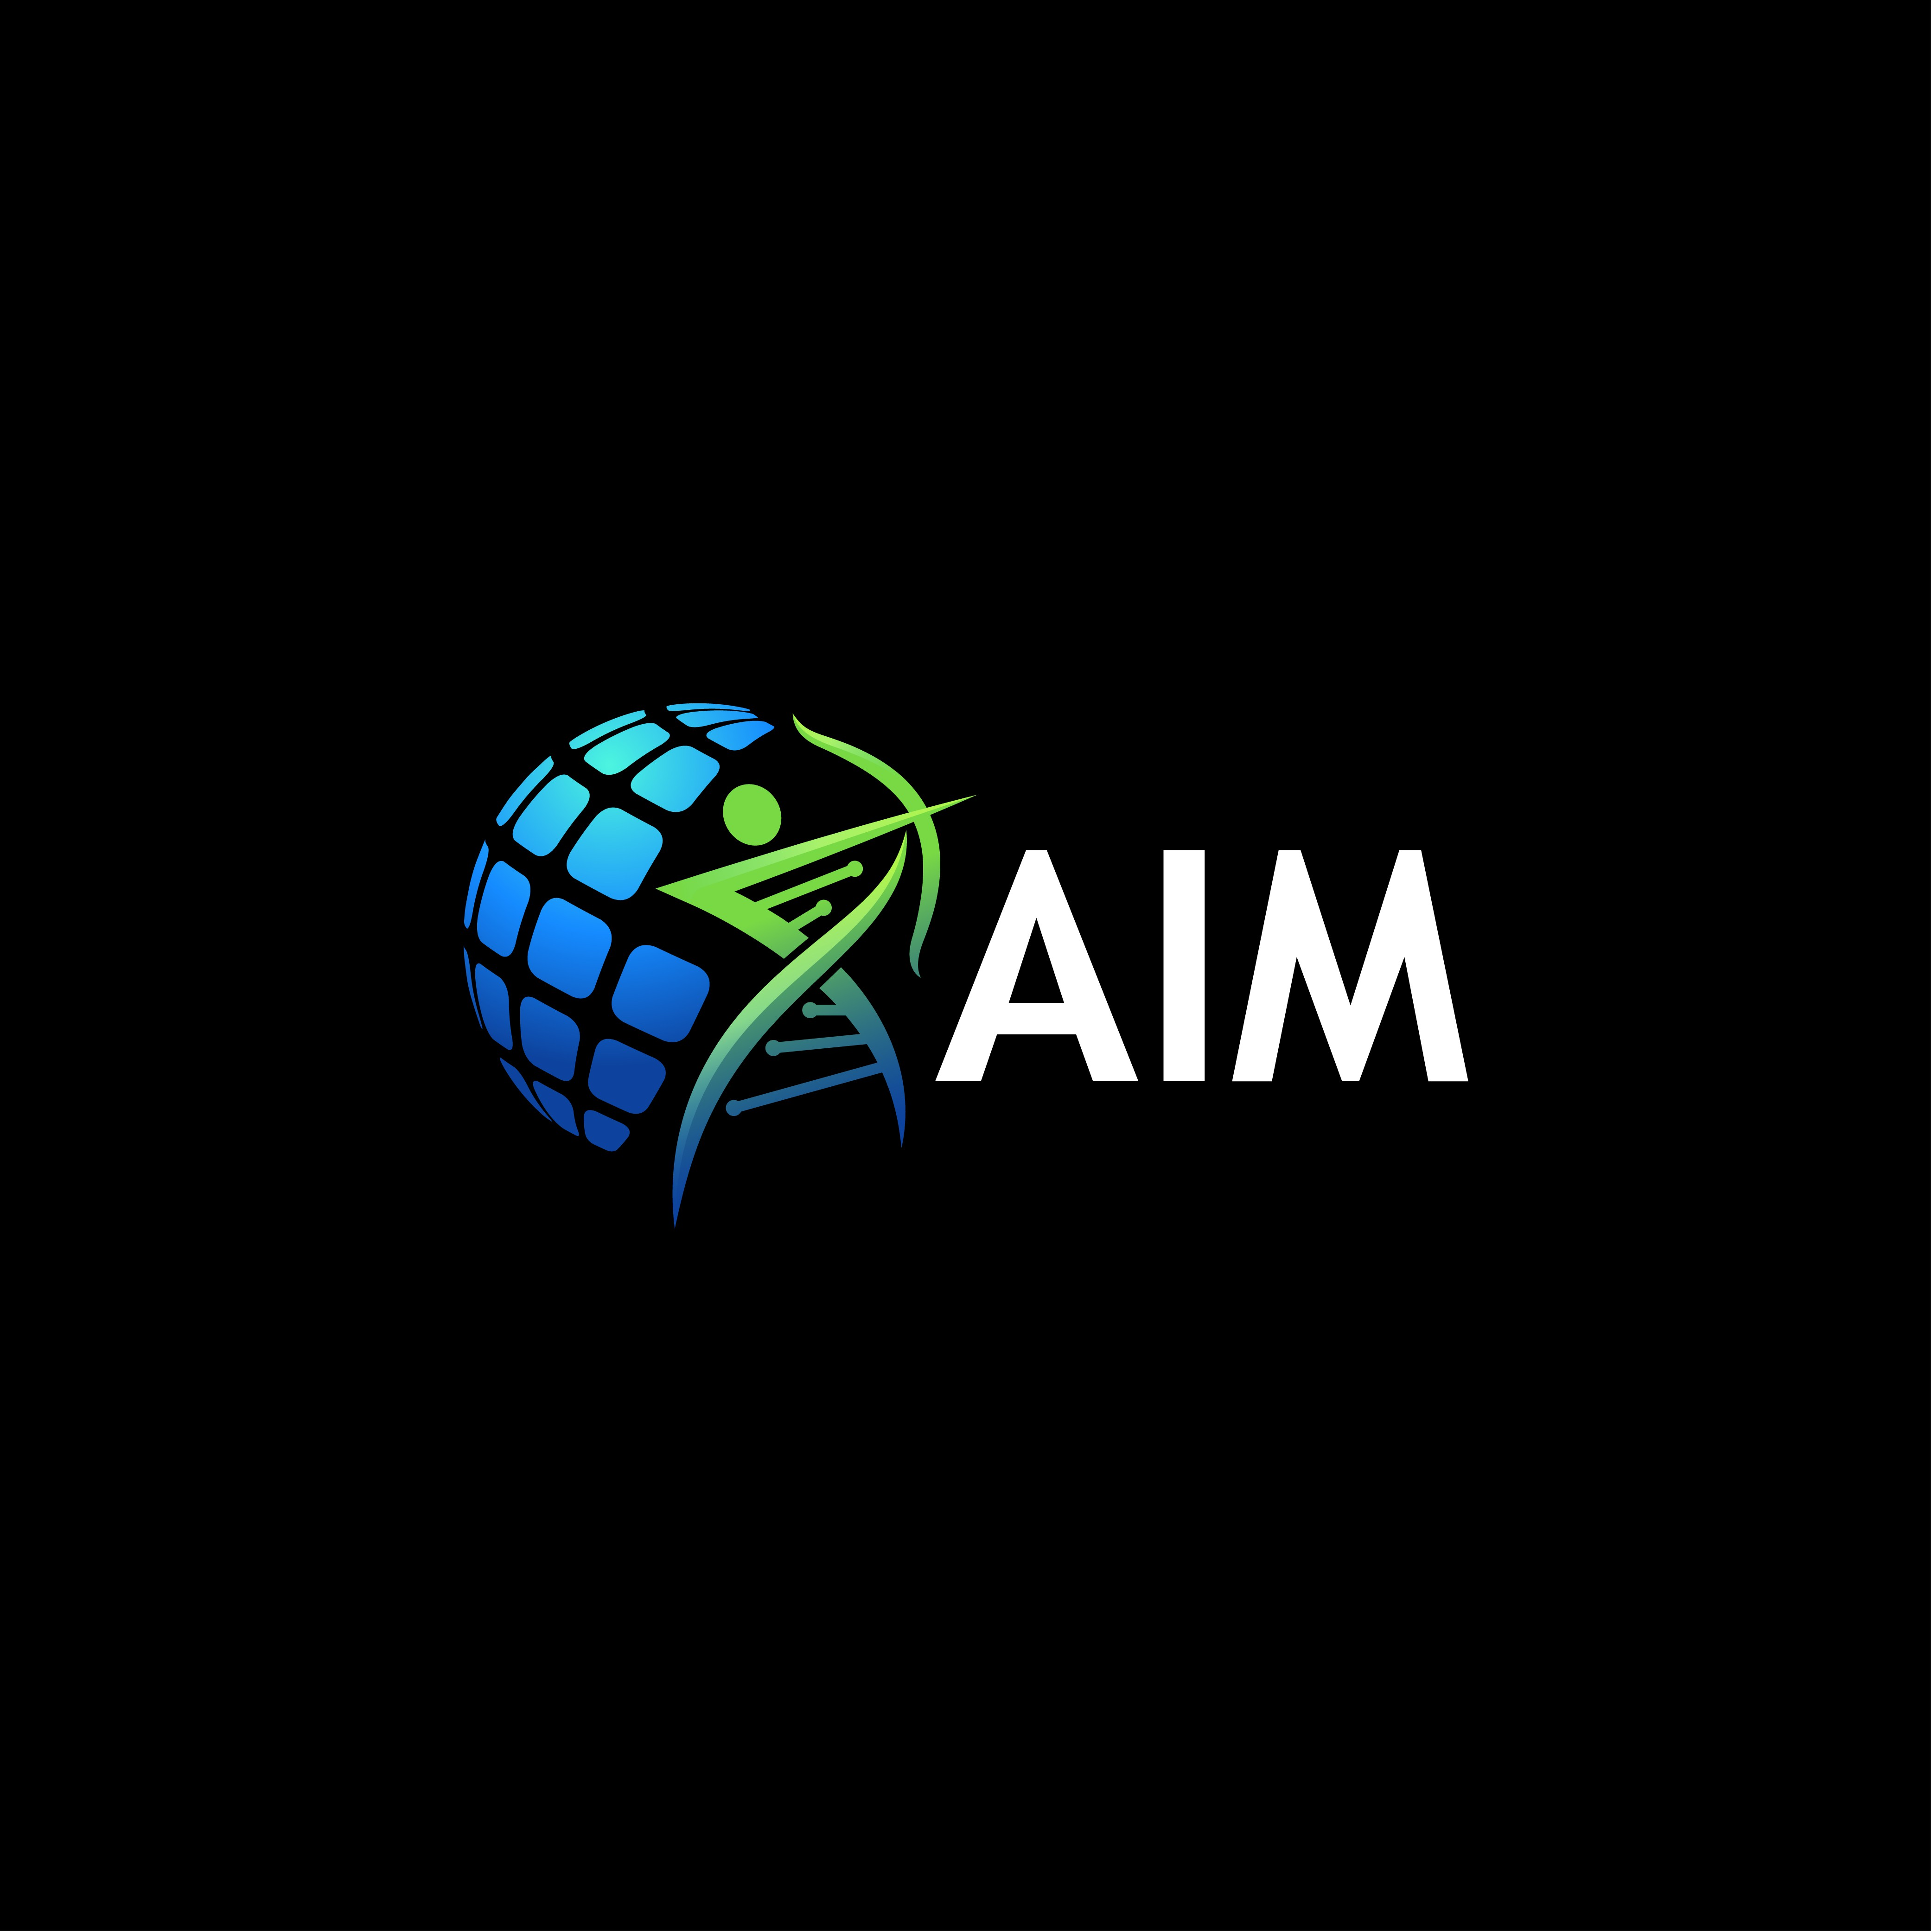 AIM LOGO for a world renown Company that advances medical breakthroughs !